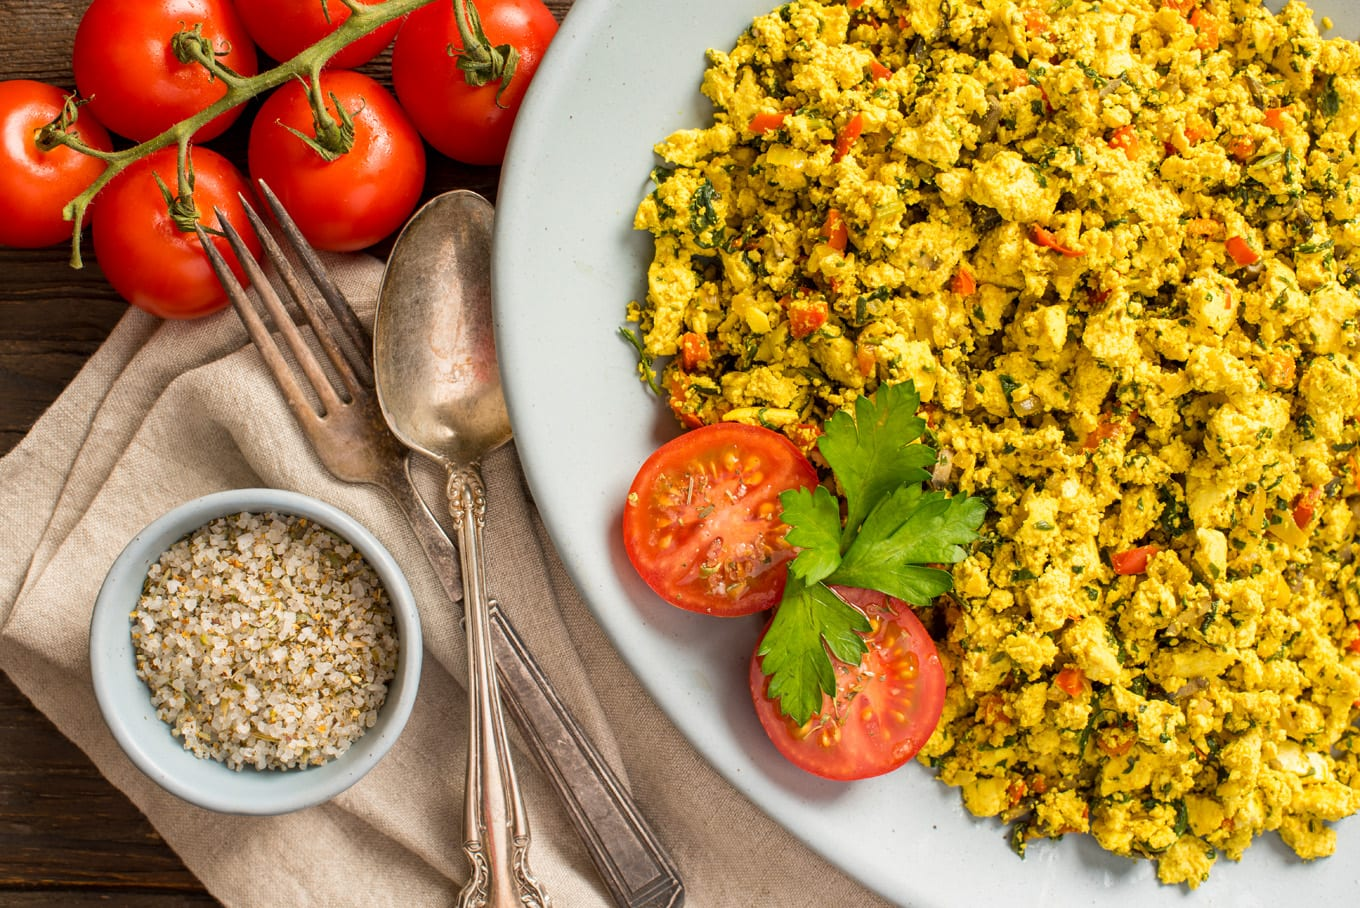 Tofu scramble on plate